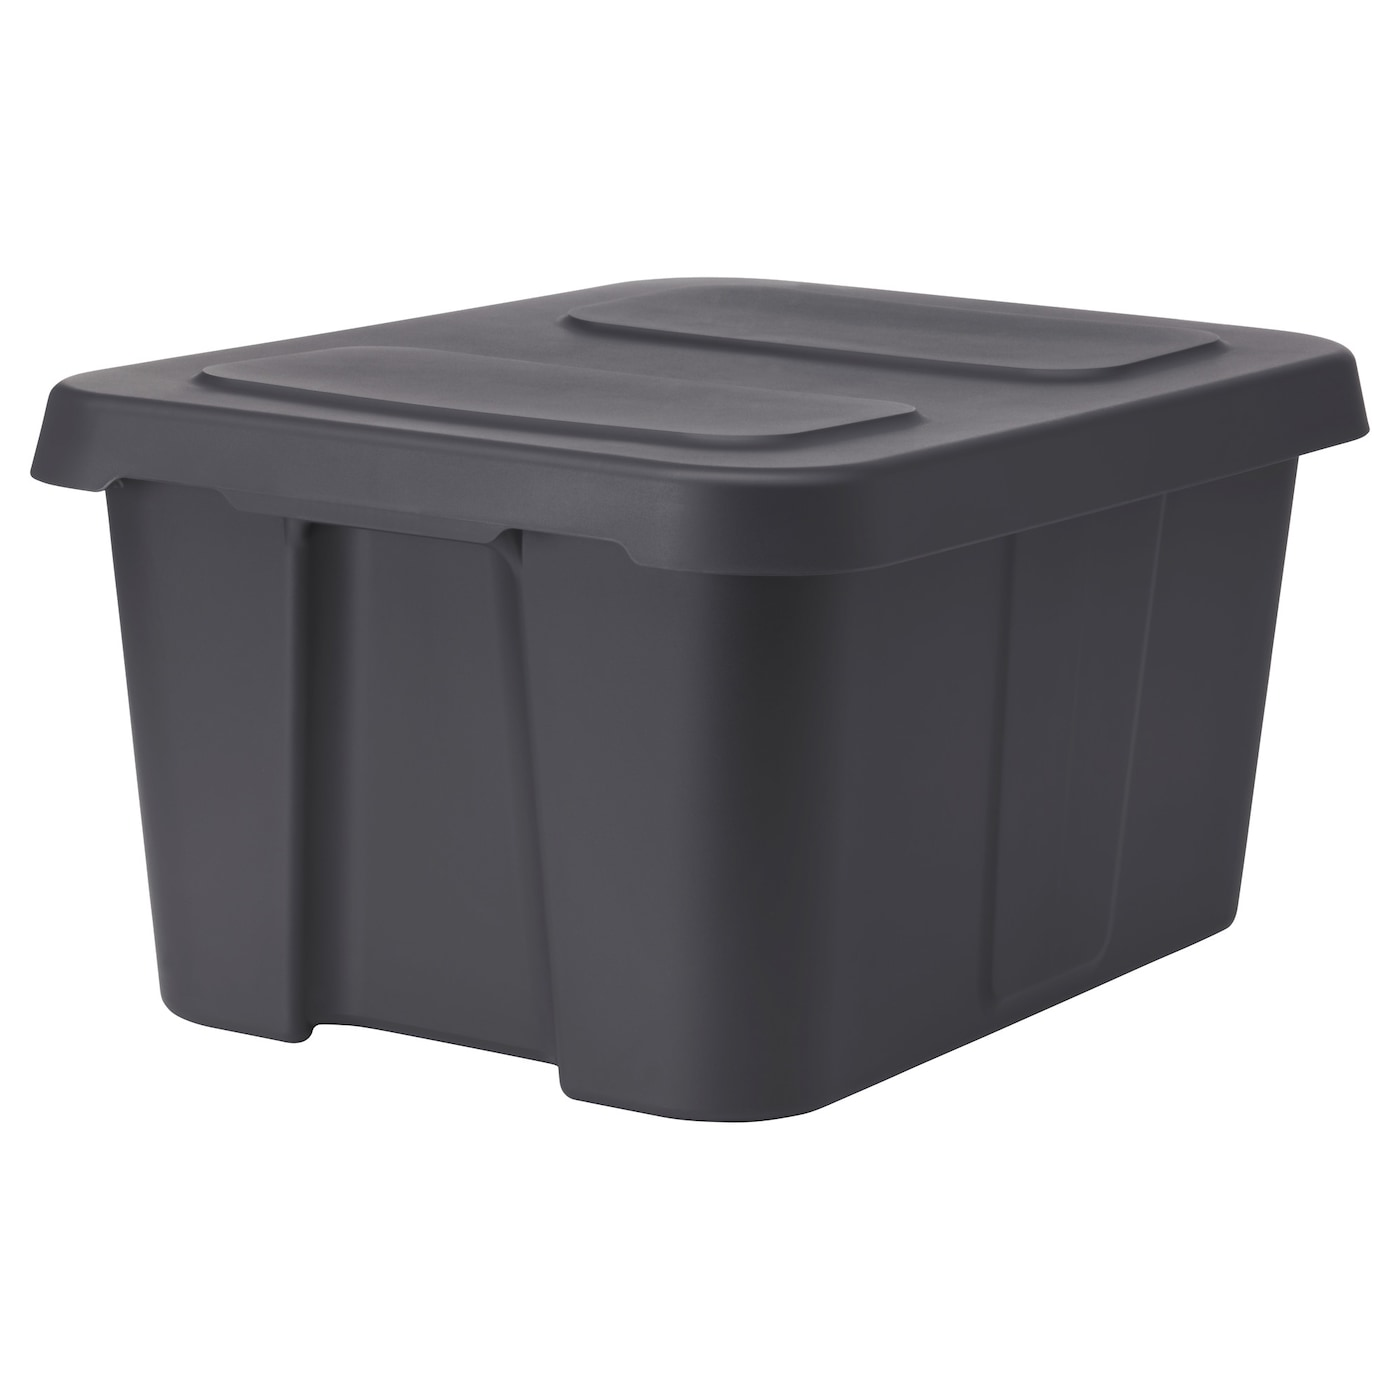 IKEA KLÄMTARE box with lid, in/outdoor Perfect for big heavy items like tools and books.